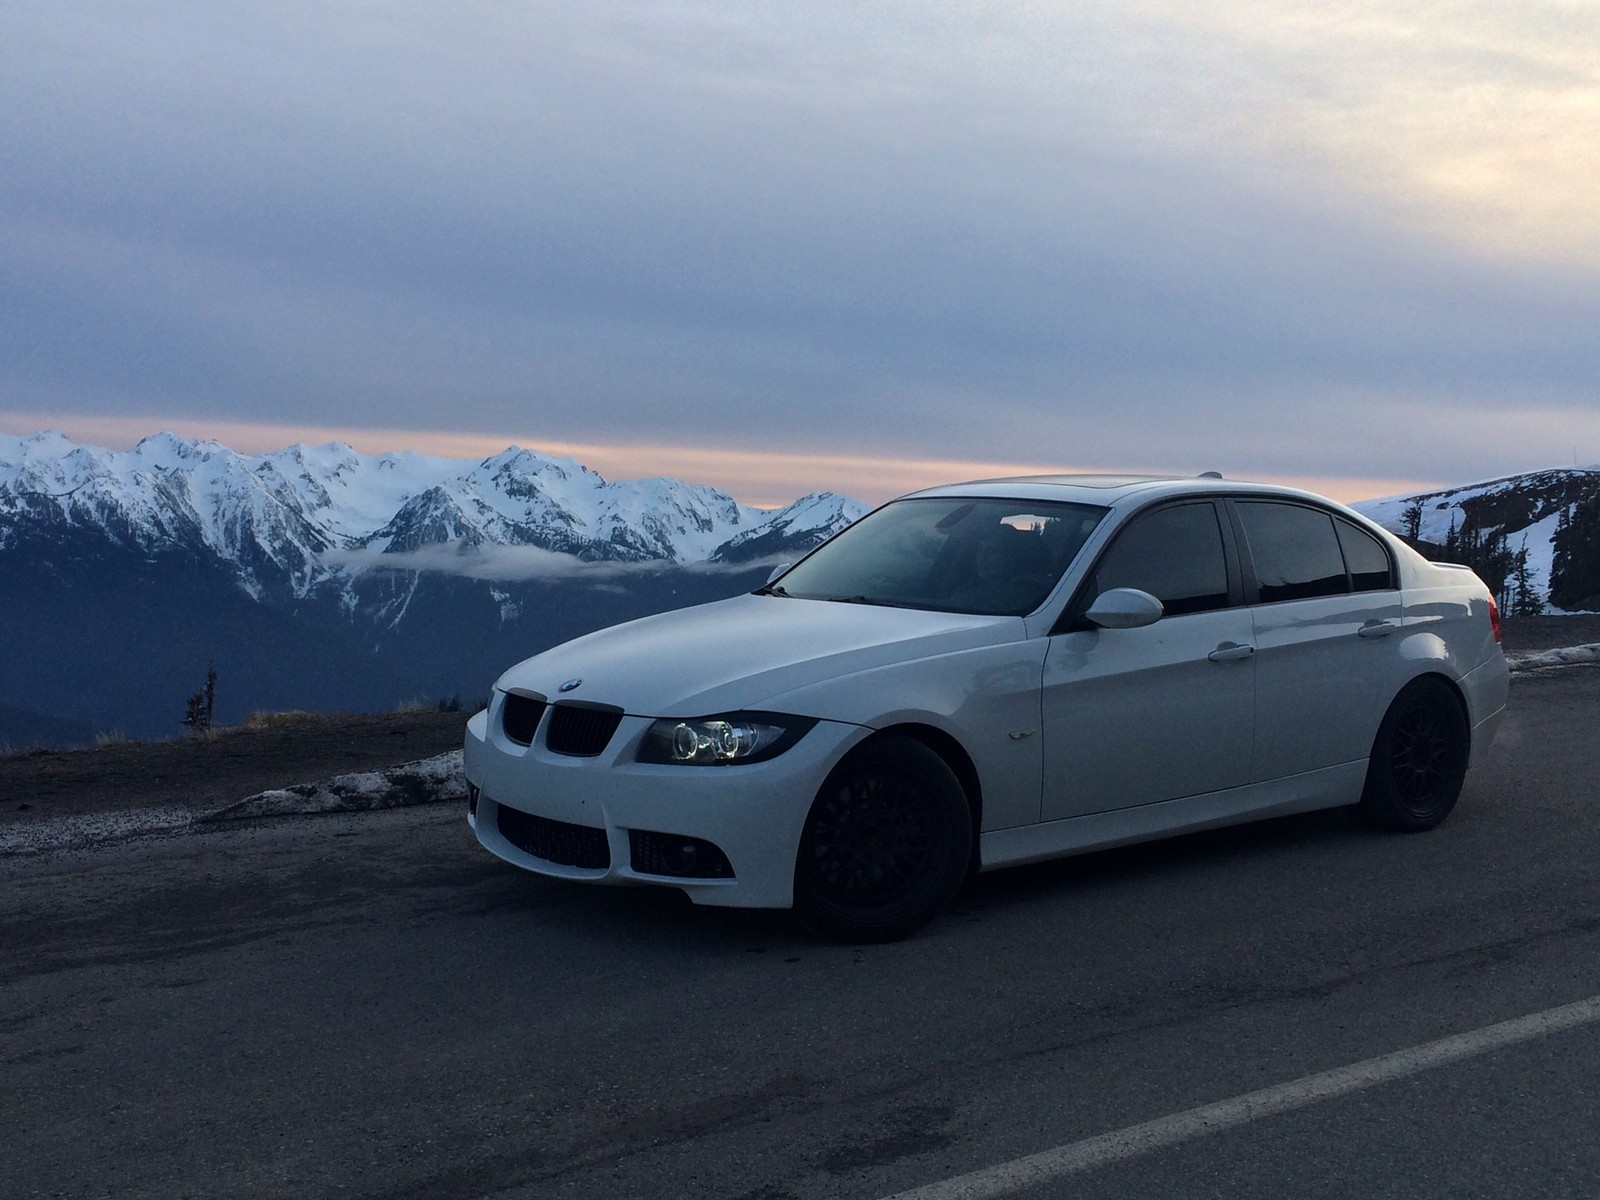 Alpine White 2007 BMW 335i RB Turbos, 6MT Stock Diff